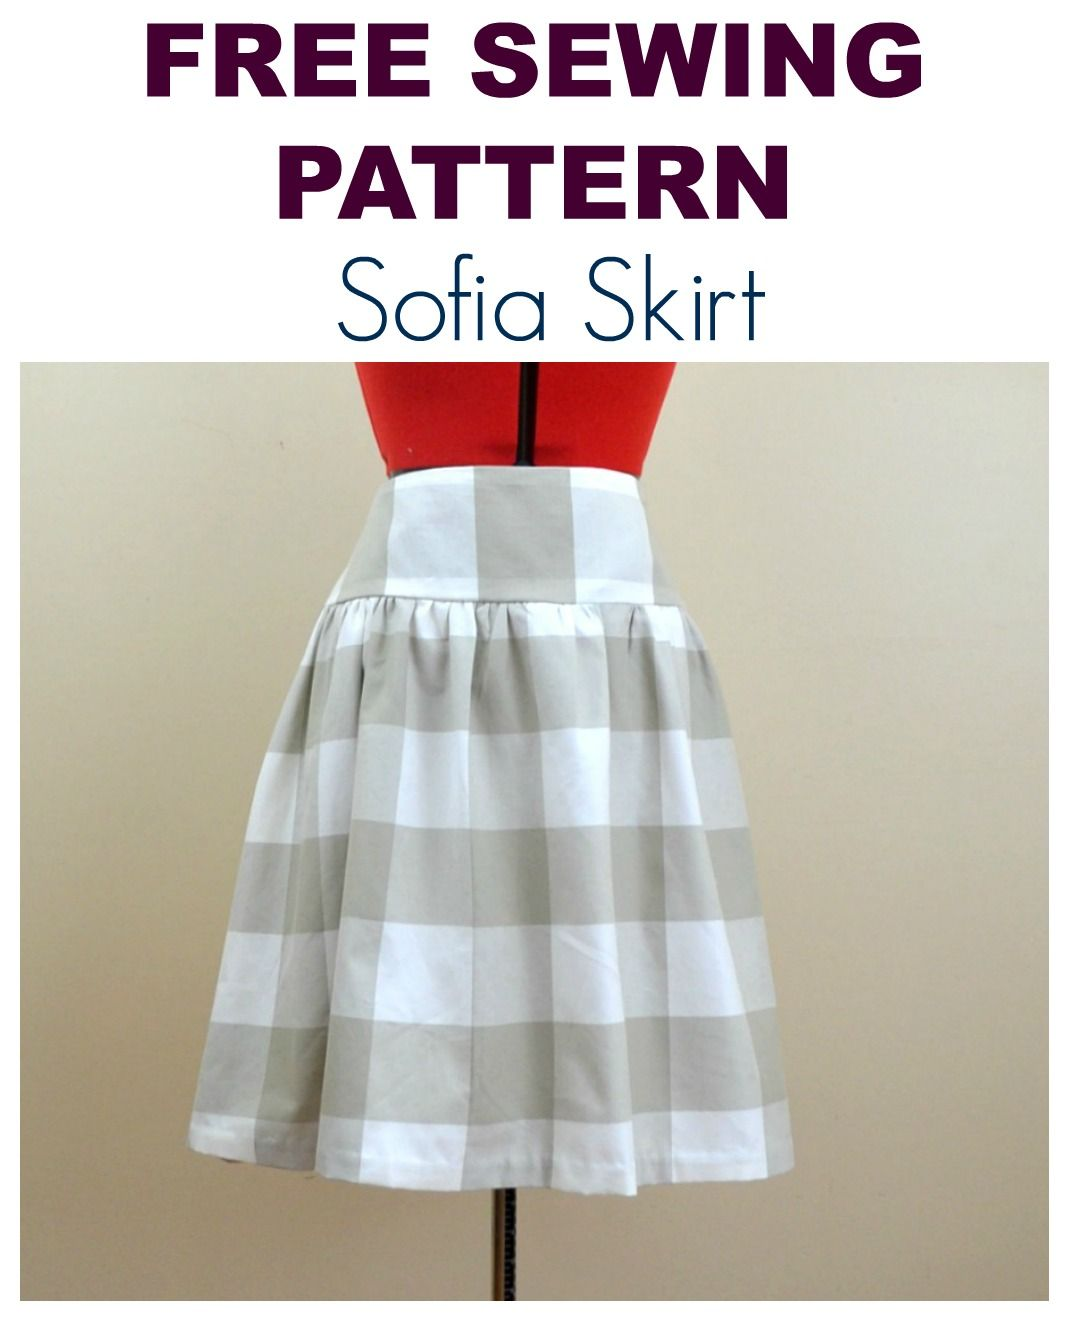 FREE SEWING PATTERN: THE SOFIA SKIRT | Pinterest | Damenkleidung ...